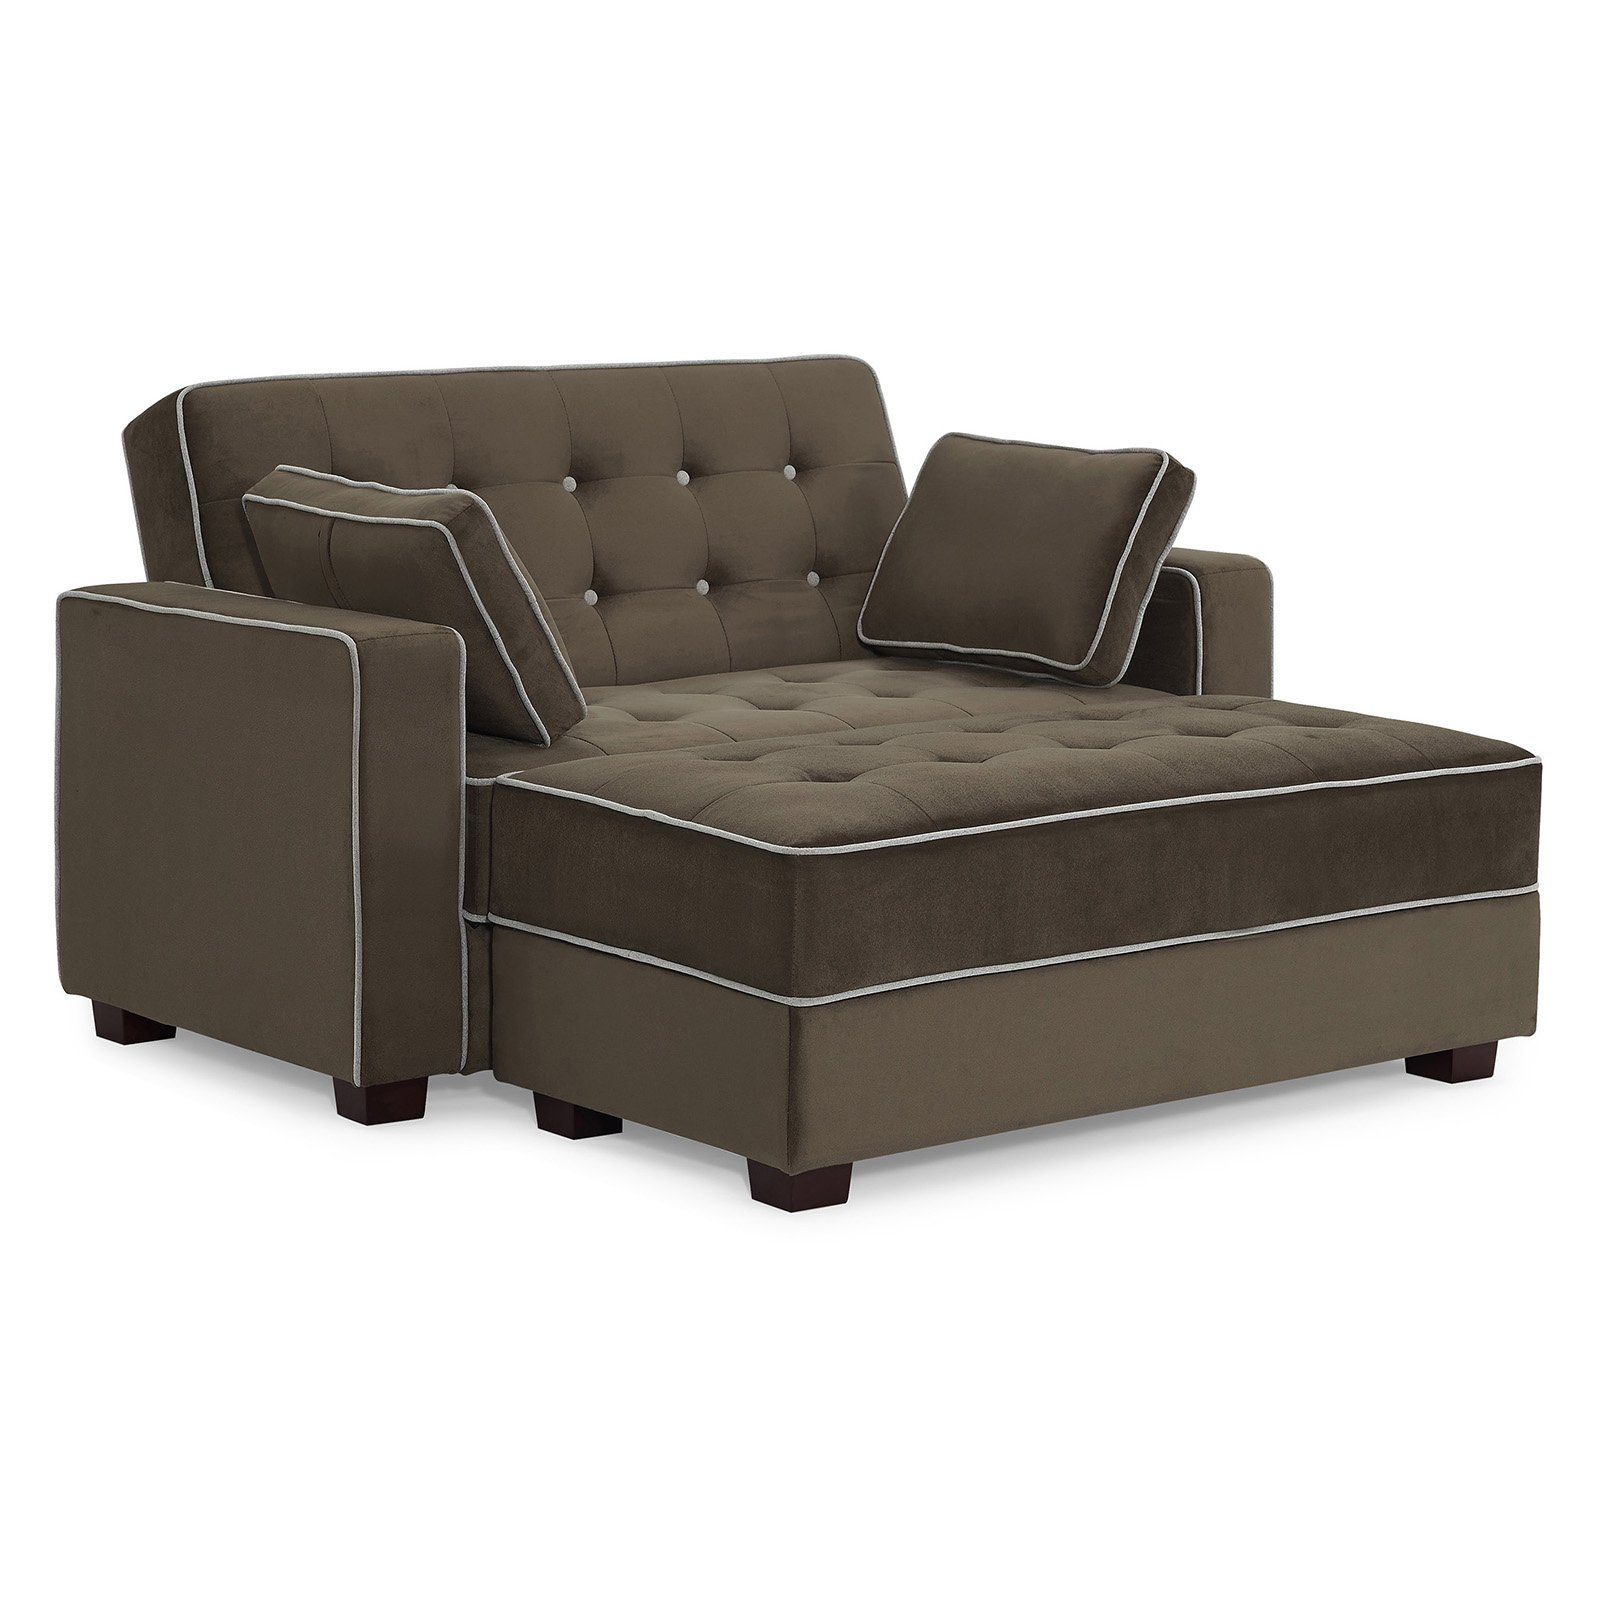 Miraculous Sealy Belize Convertible Storage Loveseat With Ottoman In Pabps2019 Chair Design Images Pabps2019Com